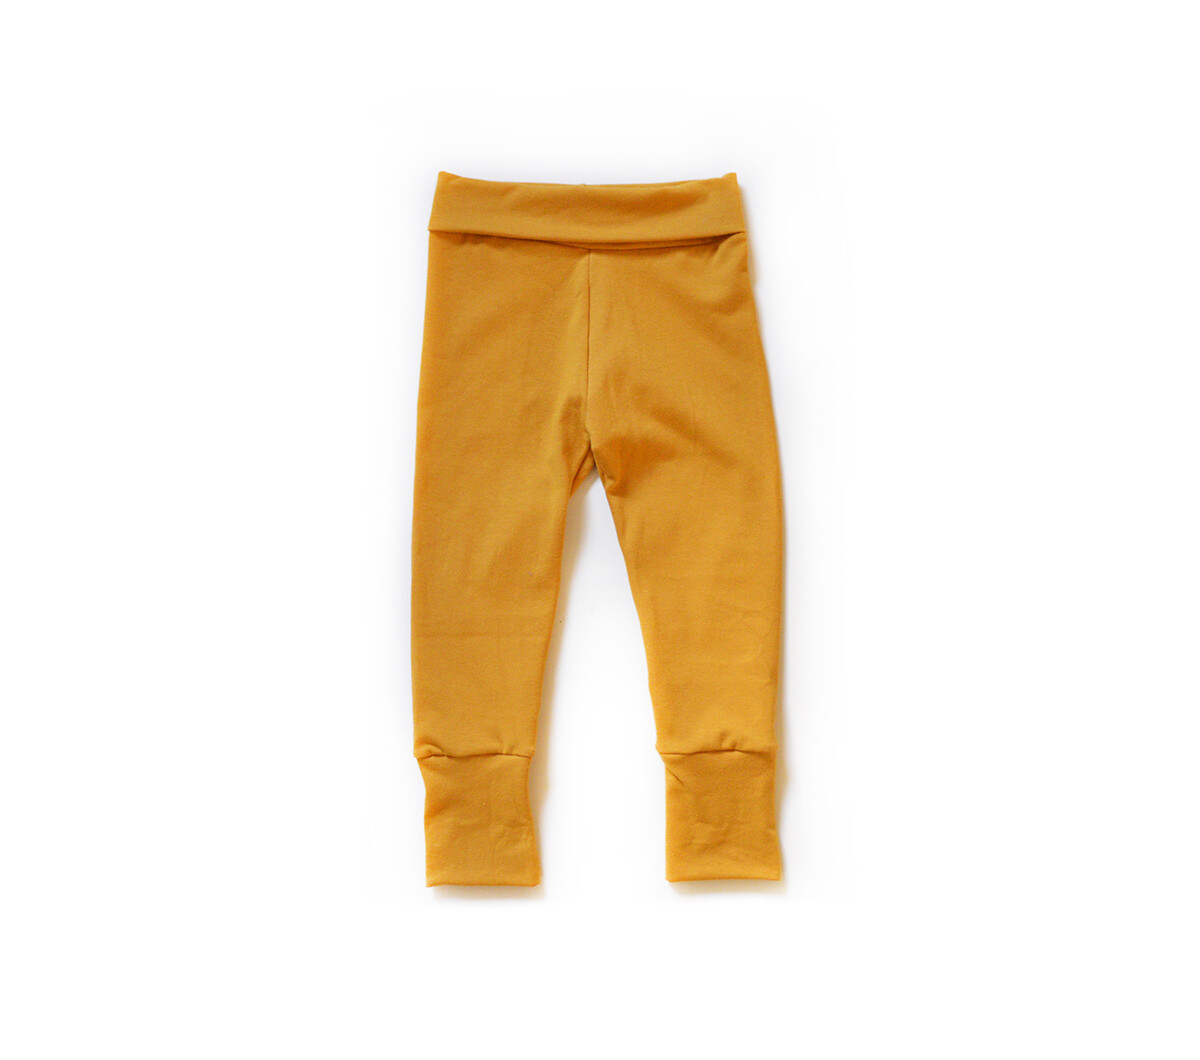 Little Sprout Pants™ in Harvest Gold | NEW Fall 2019